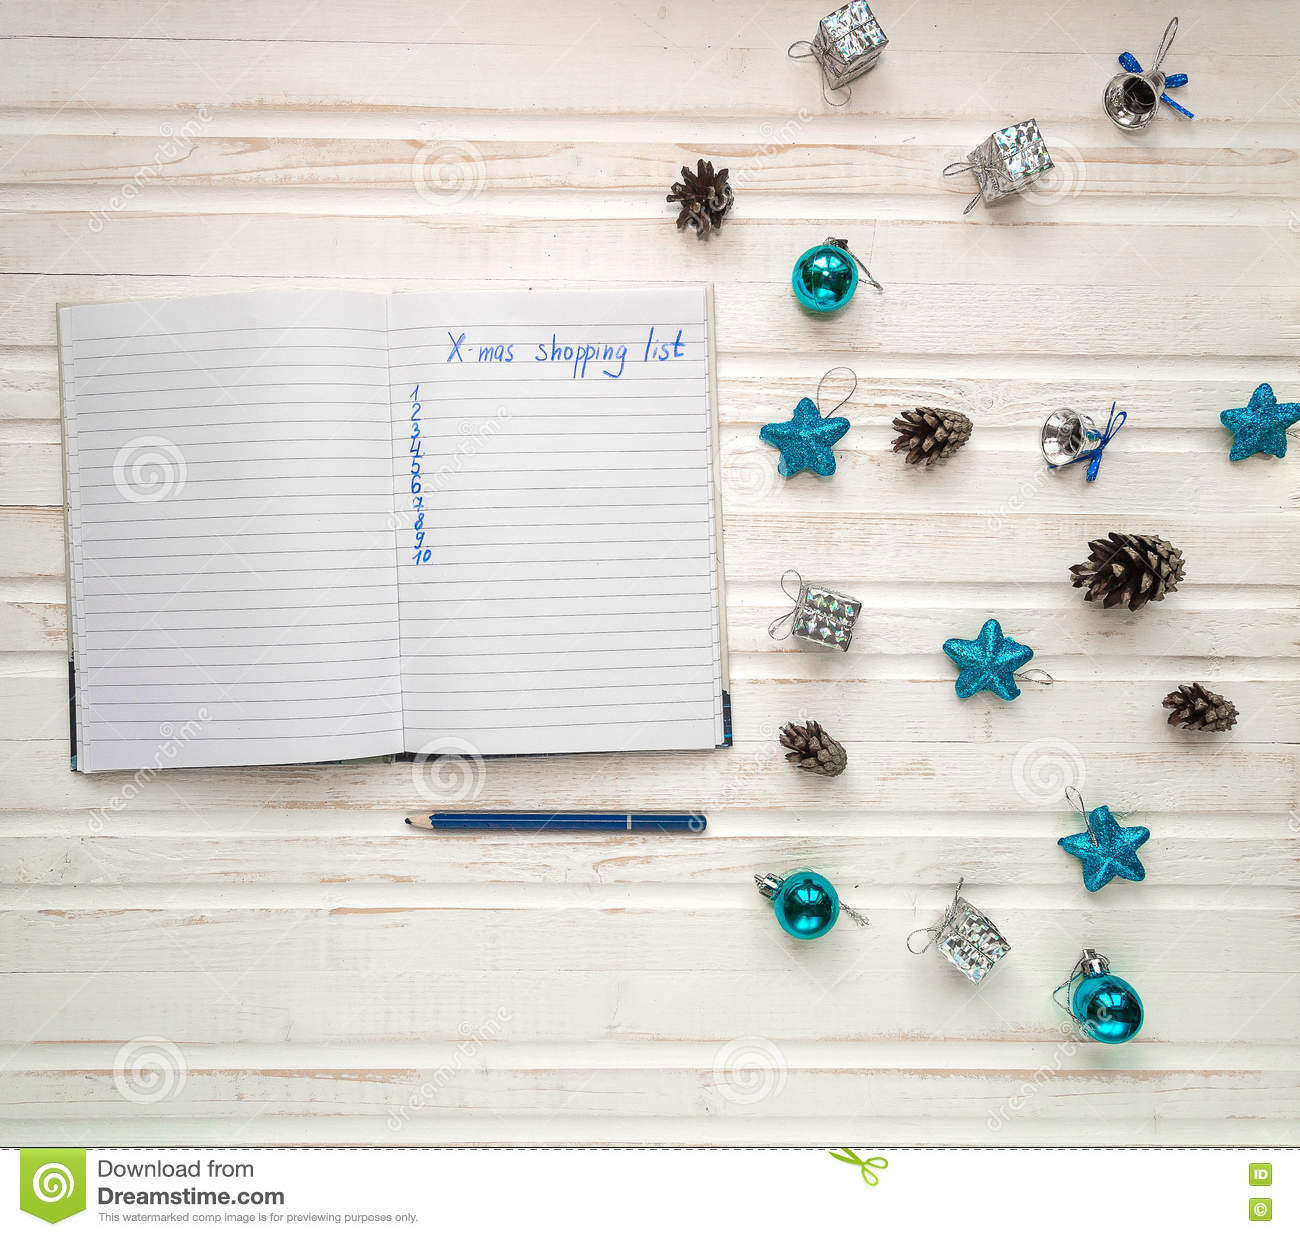 Christmas Shopping List On White Wooden Background Holiday Deco